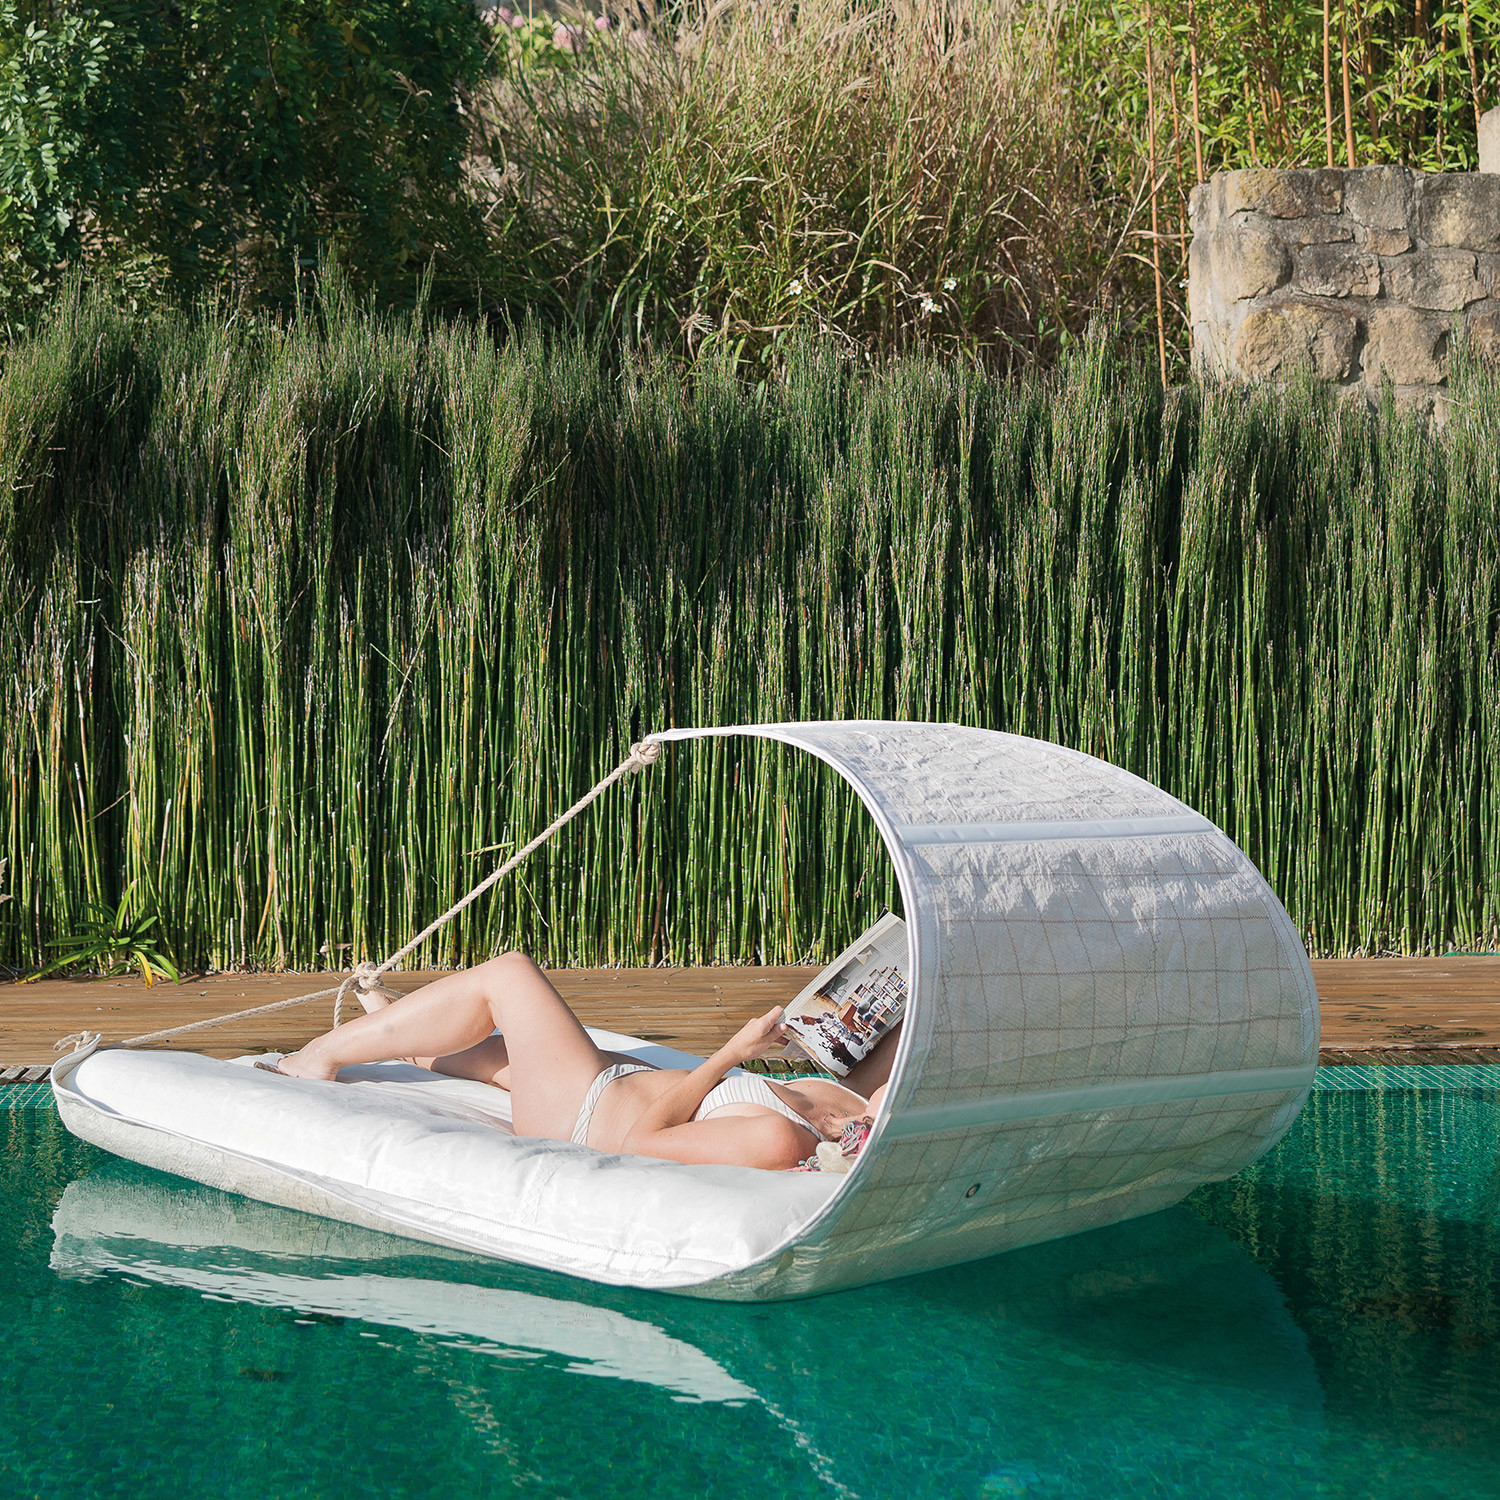 Dvelas Vaurien Floating Inflatable Lounger Upcycle Sailcloth